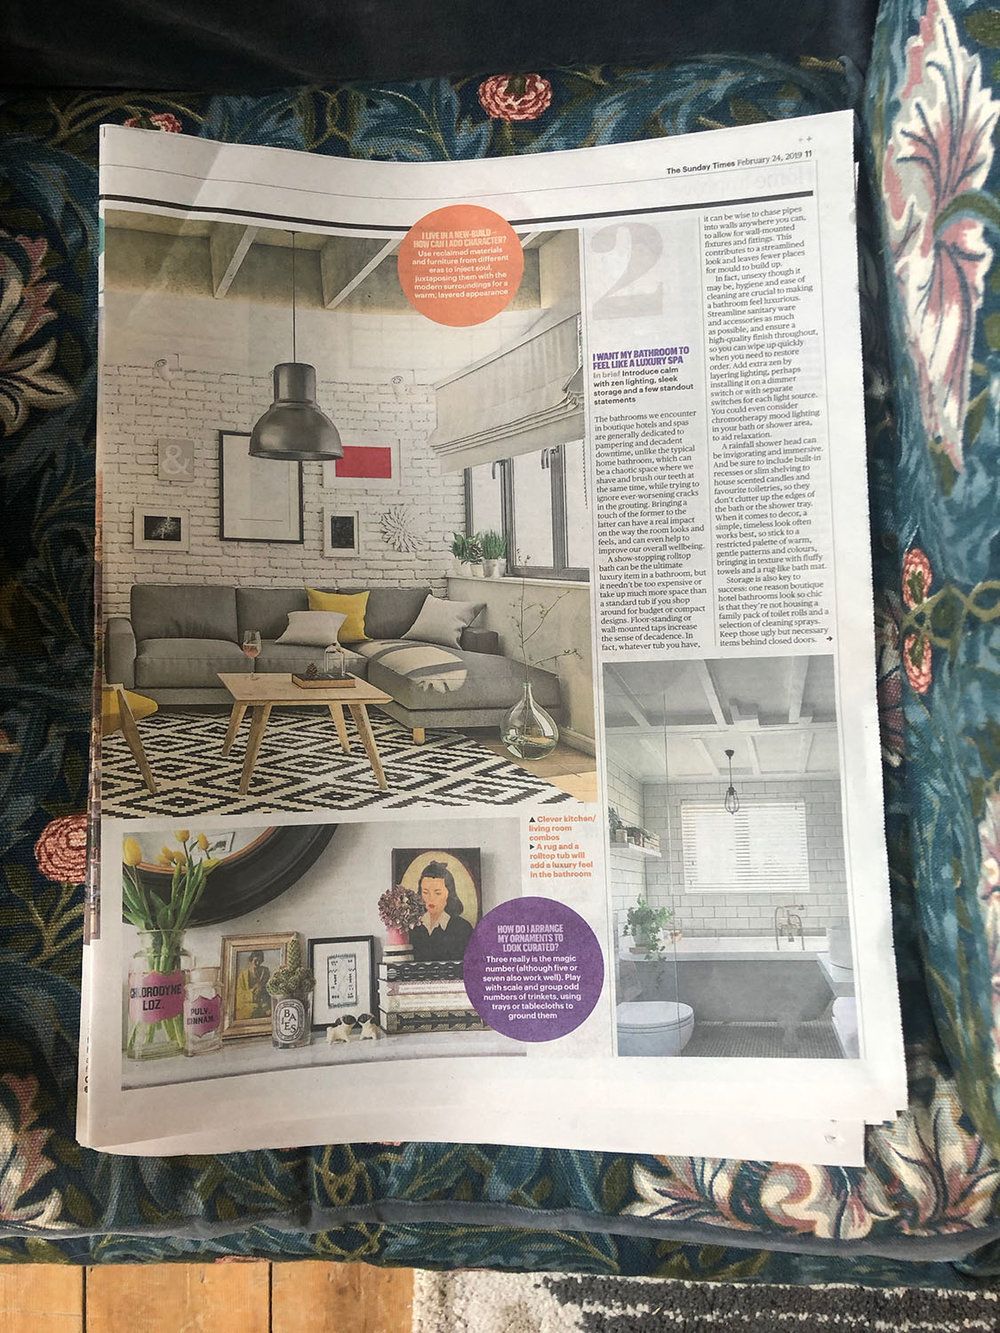 Sunday Times Home featuring My Bedroom Is an Office by Joanna Thornhill 24th Feb 2019 - P2.jpg